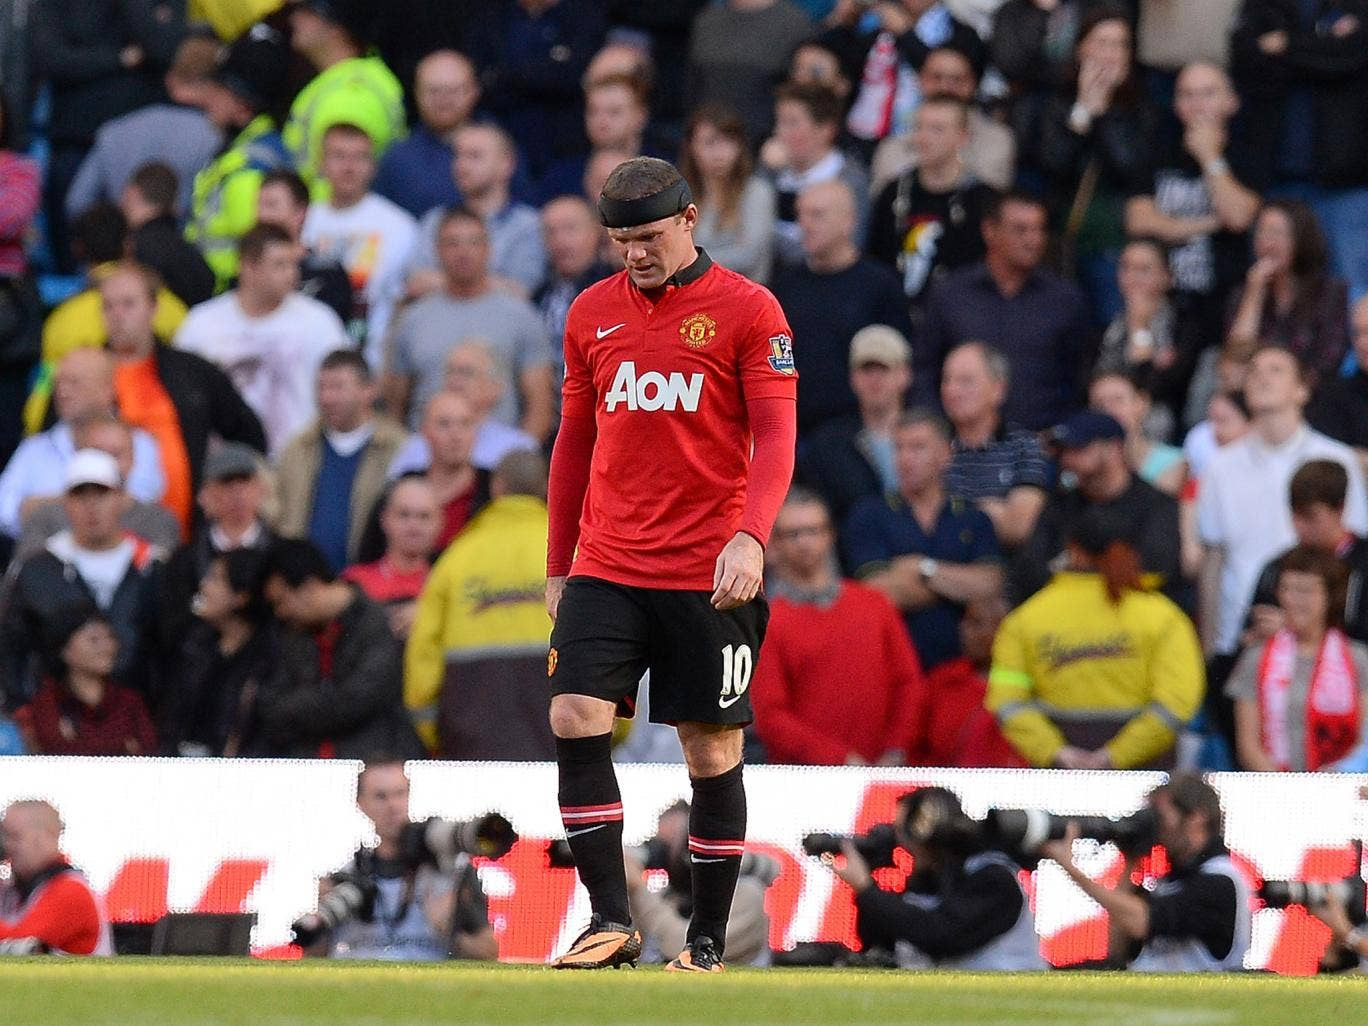 Wayne Rooney cut a dejected figure despite scoring to become the leading goalscorer in the Manchester derby